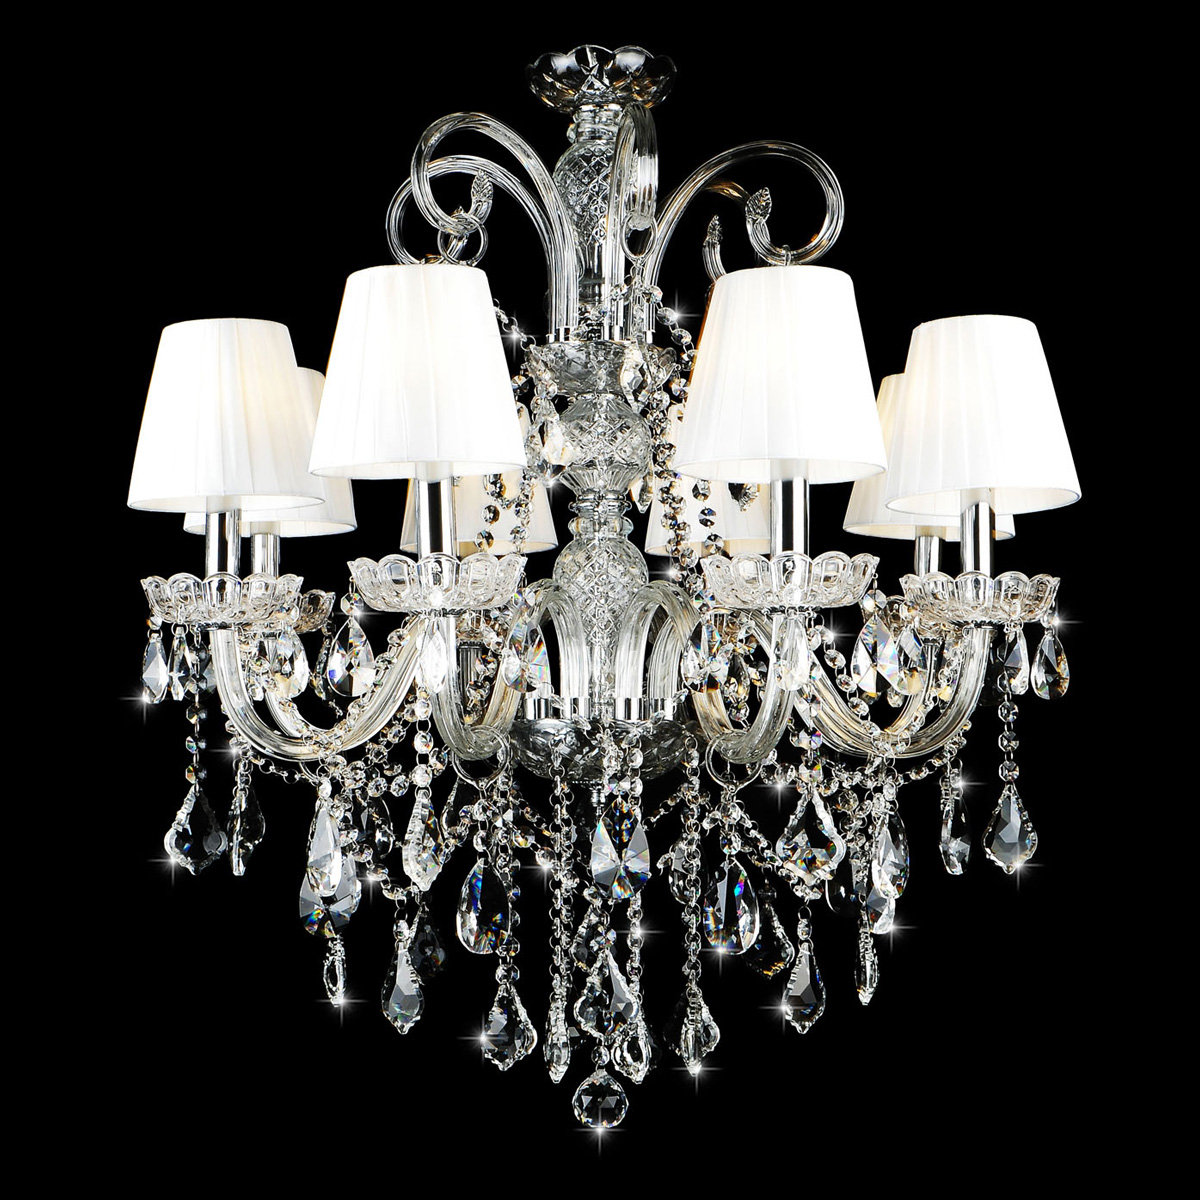 Free shipping European Style Candle Crystal chandelier Lamp House The Living Room Dining Bedroom chandelier new chandelier silver wings silver wings 31mc0198 38 44